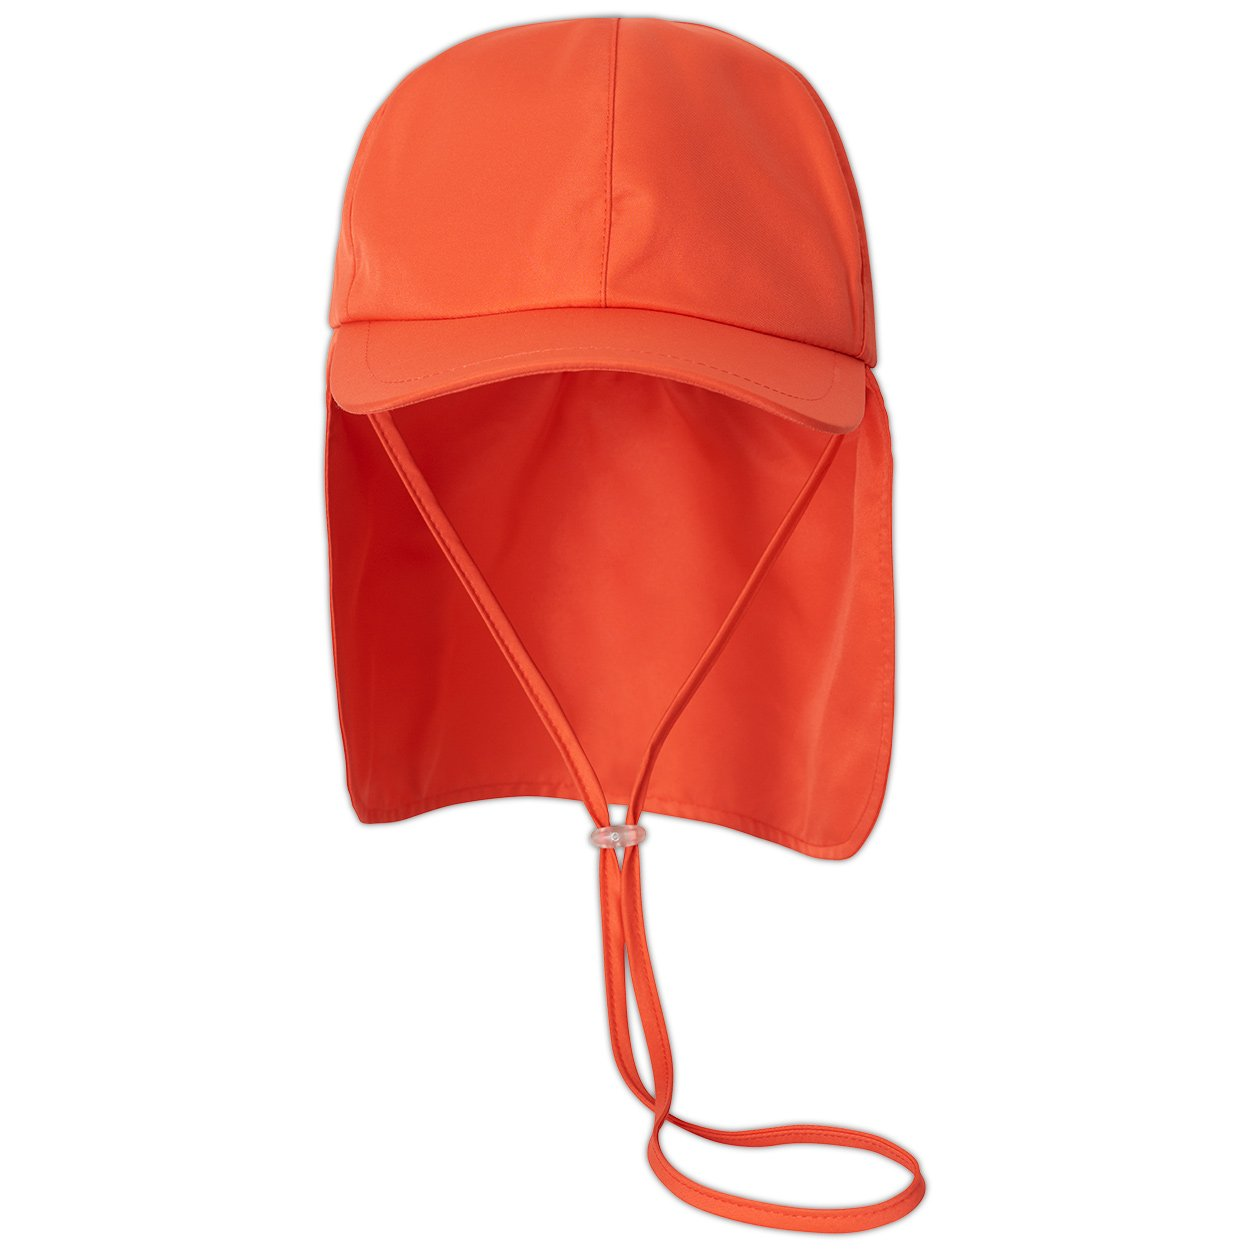 Kids Orange Legionnaire Sun Hat Upf 50 Size S Xl Boys Girls Unisex Front View Sunpoplife